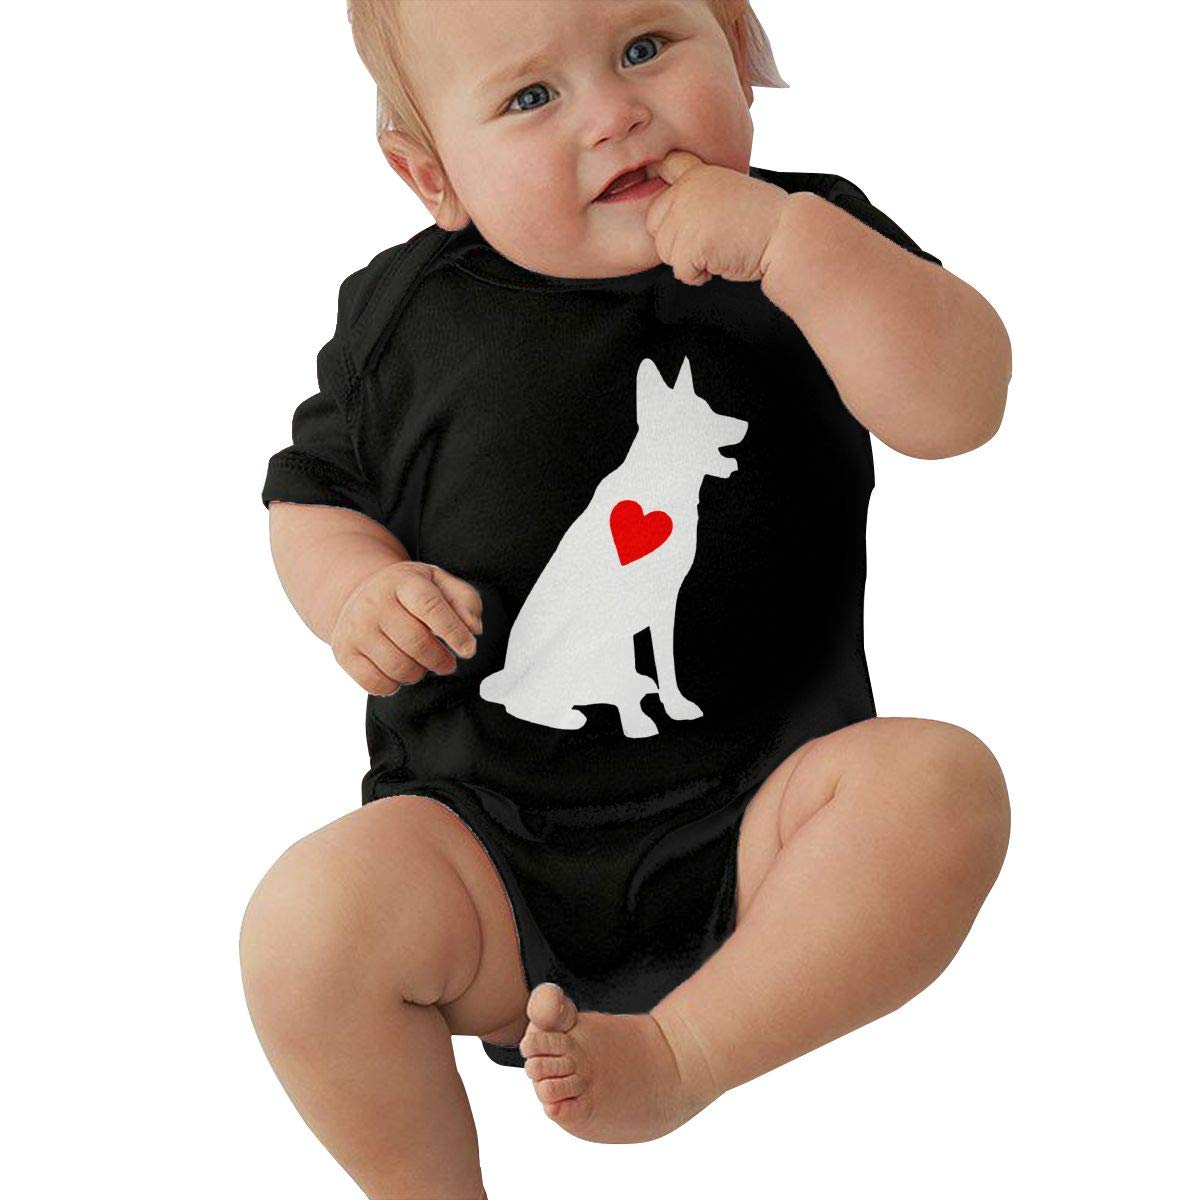 JJKKFG-H German Shepherd with Heart Printed Summer Baby Boys /& Girls Short Sleeve Bodysuit Jumpsuit Outfits Shirt